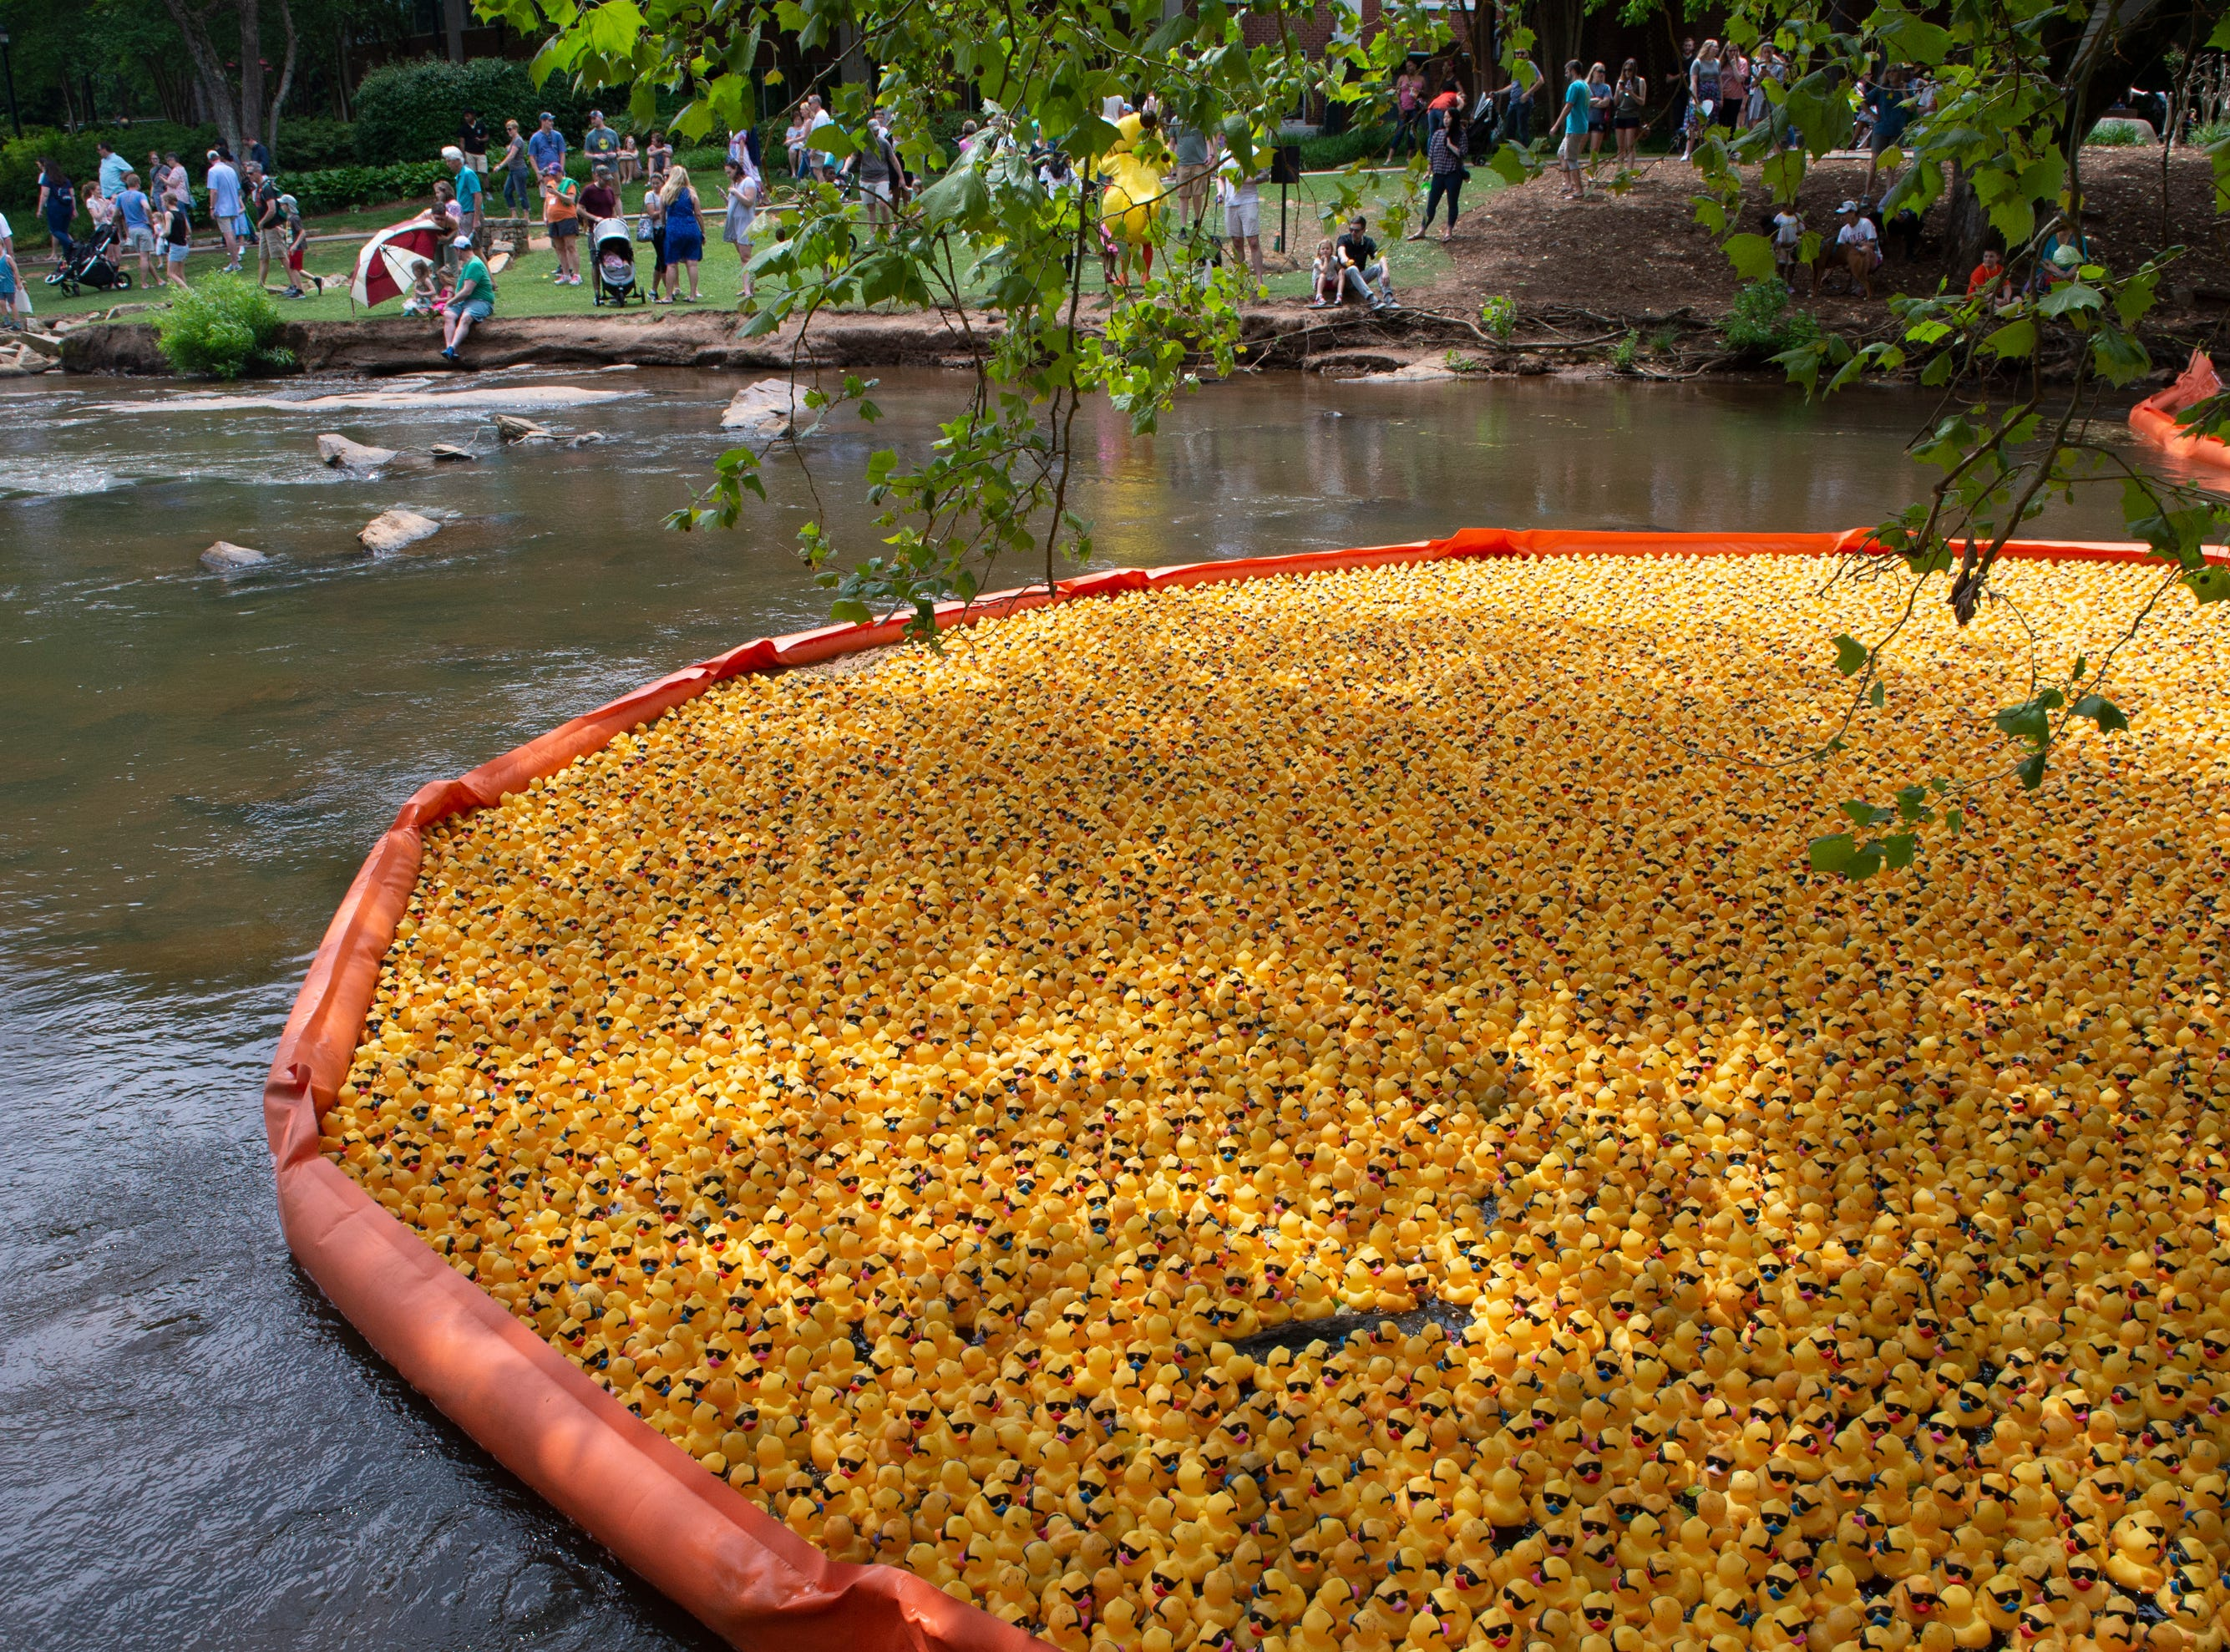 People gather near the start of the 2019 Reedy River Duck Derby in Falls Park on the Reedy Saturday, May 4, 2019.